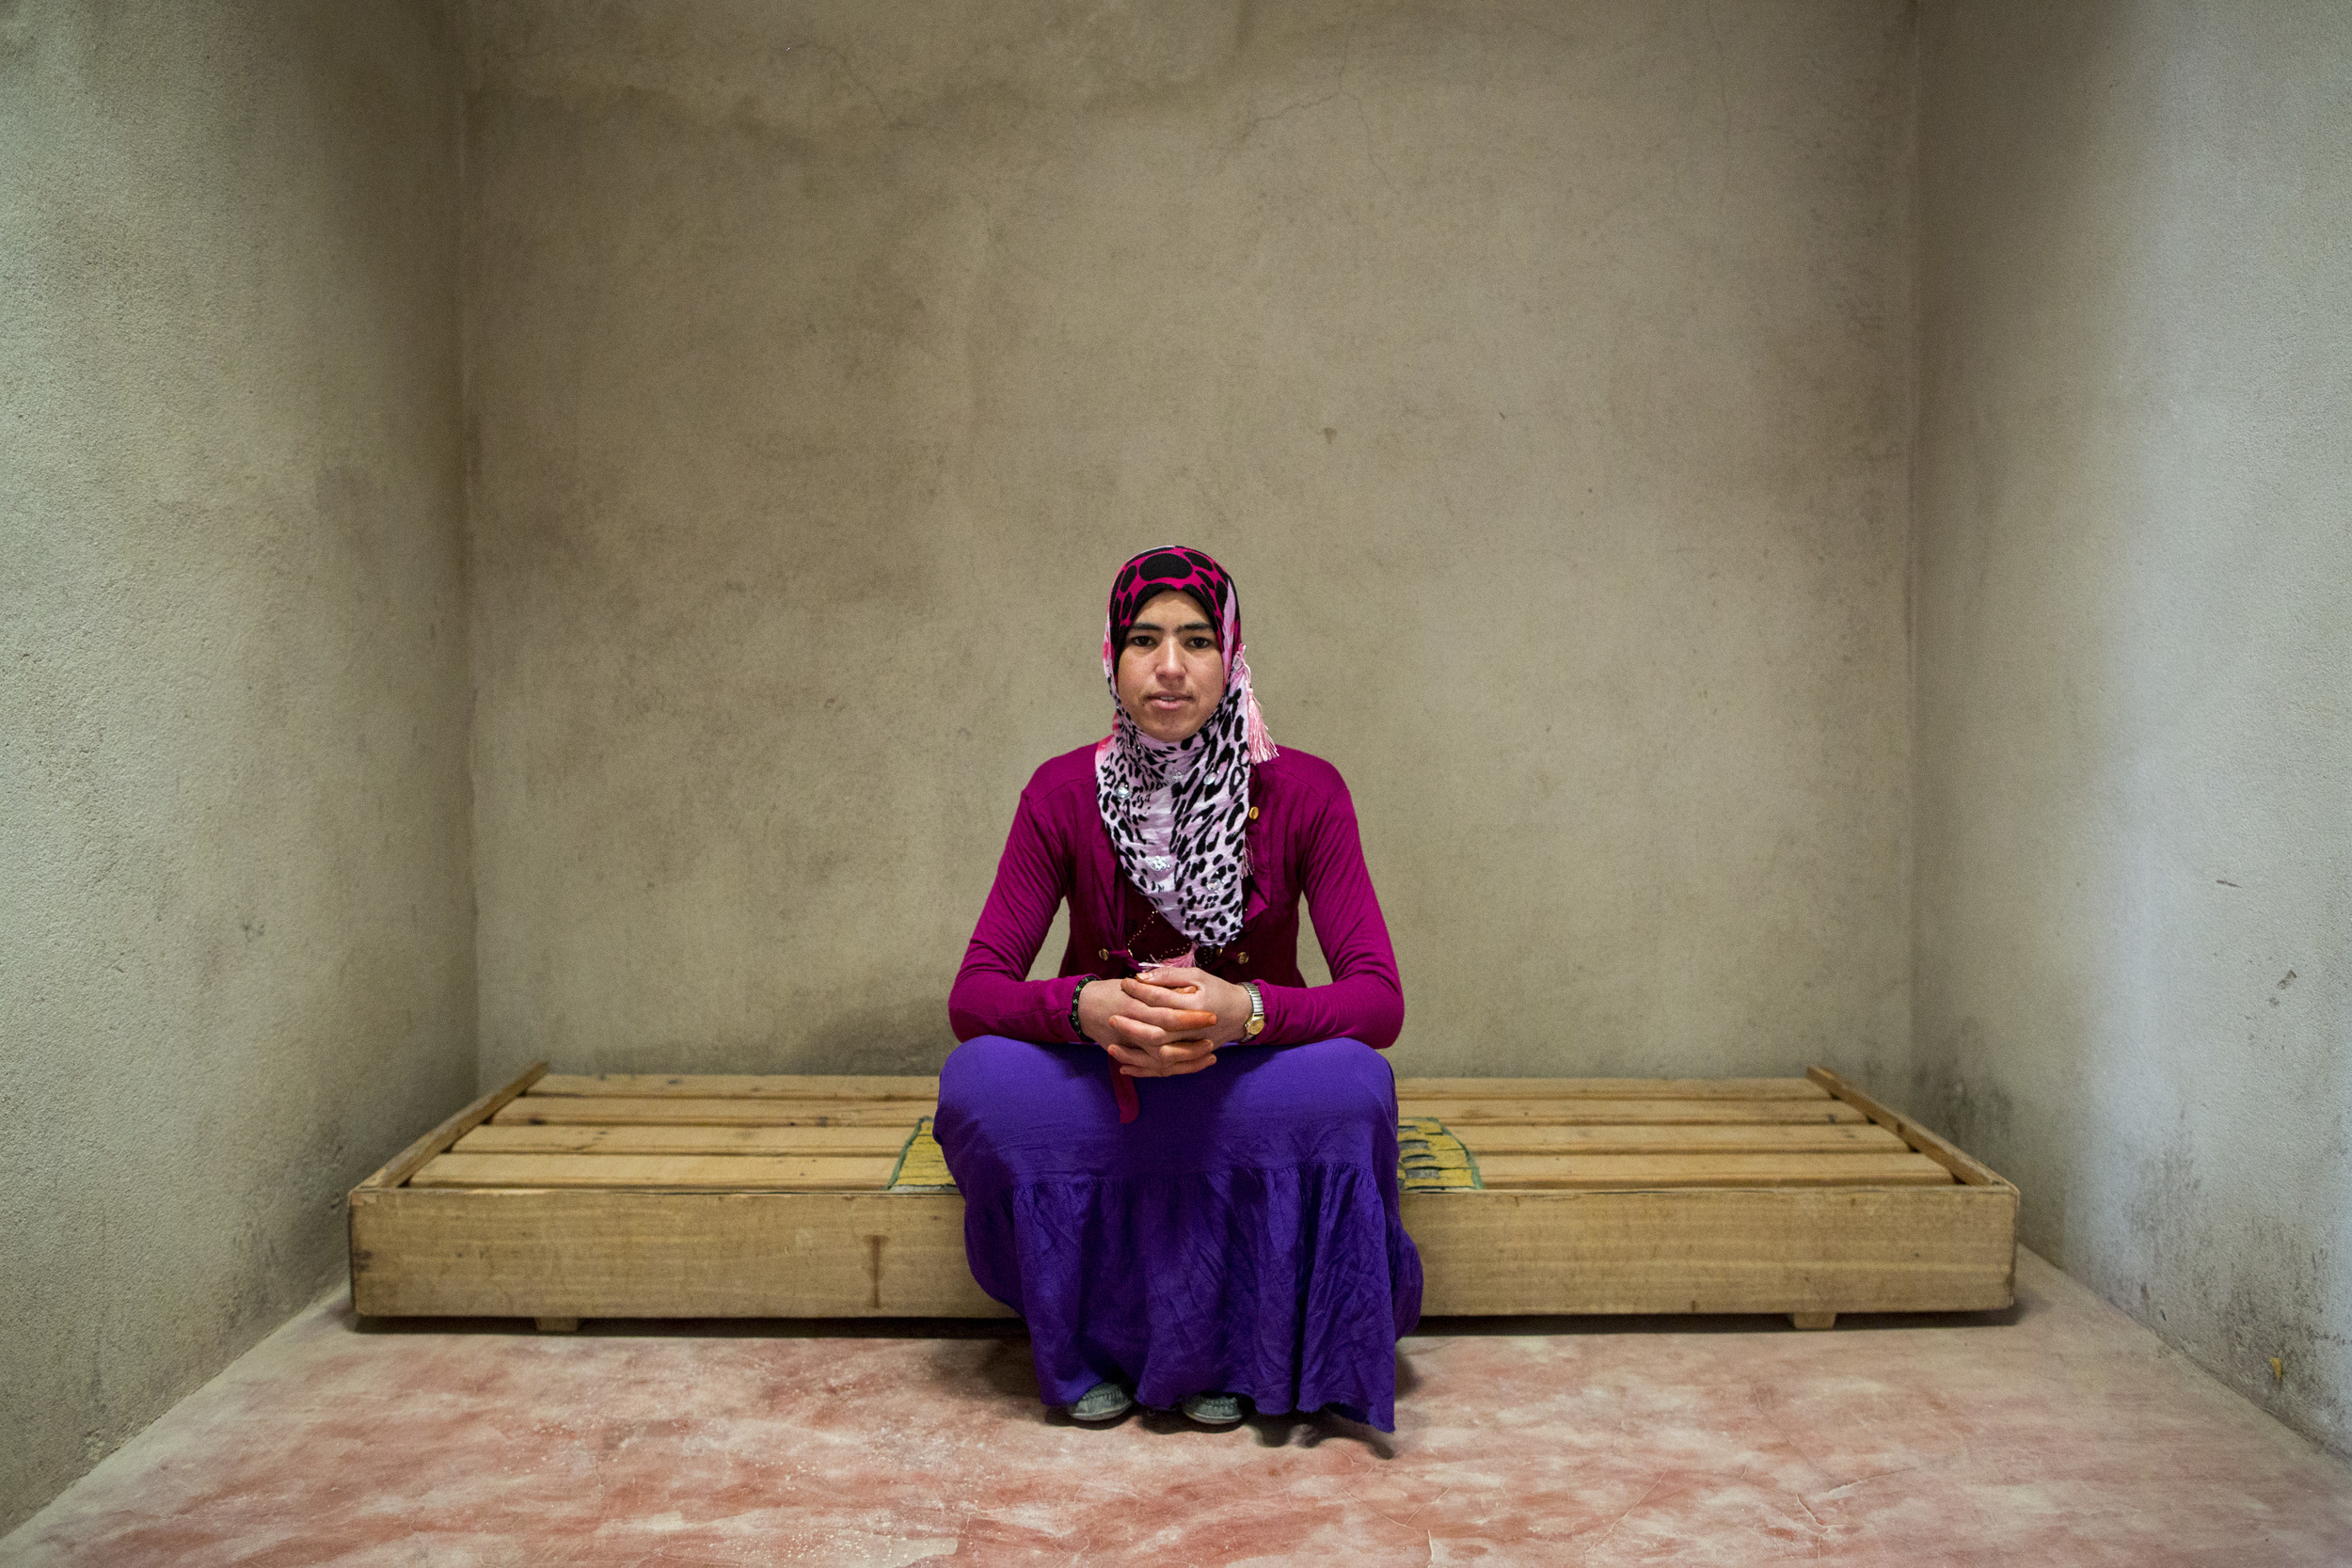 """Mina Ait Hmad, 23, is going to be married soon, """"I regret dropping out of school, but it's too late now for me to go back now. I'm getting ready for the next stage in my life."""""""